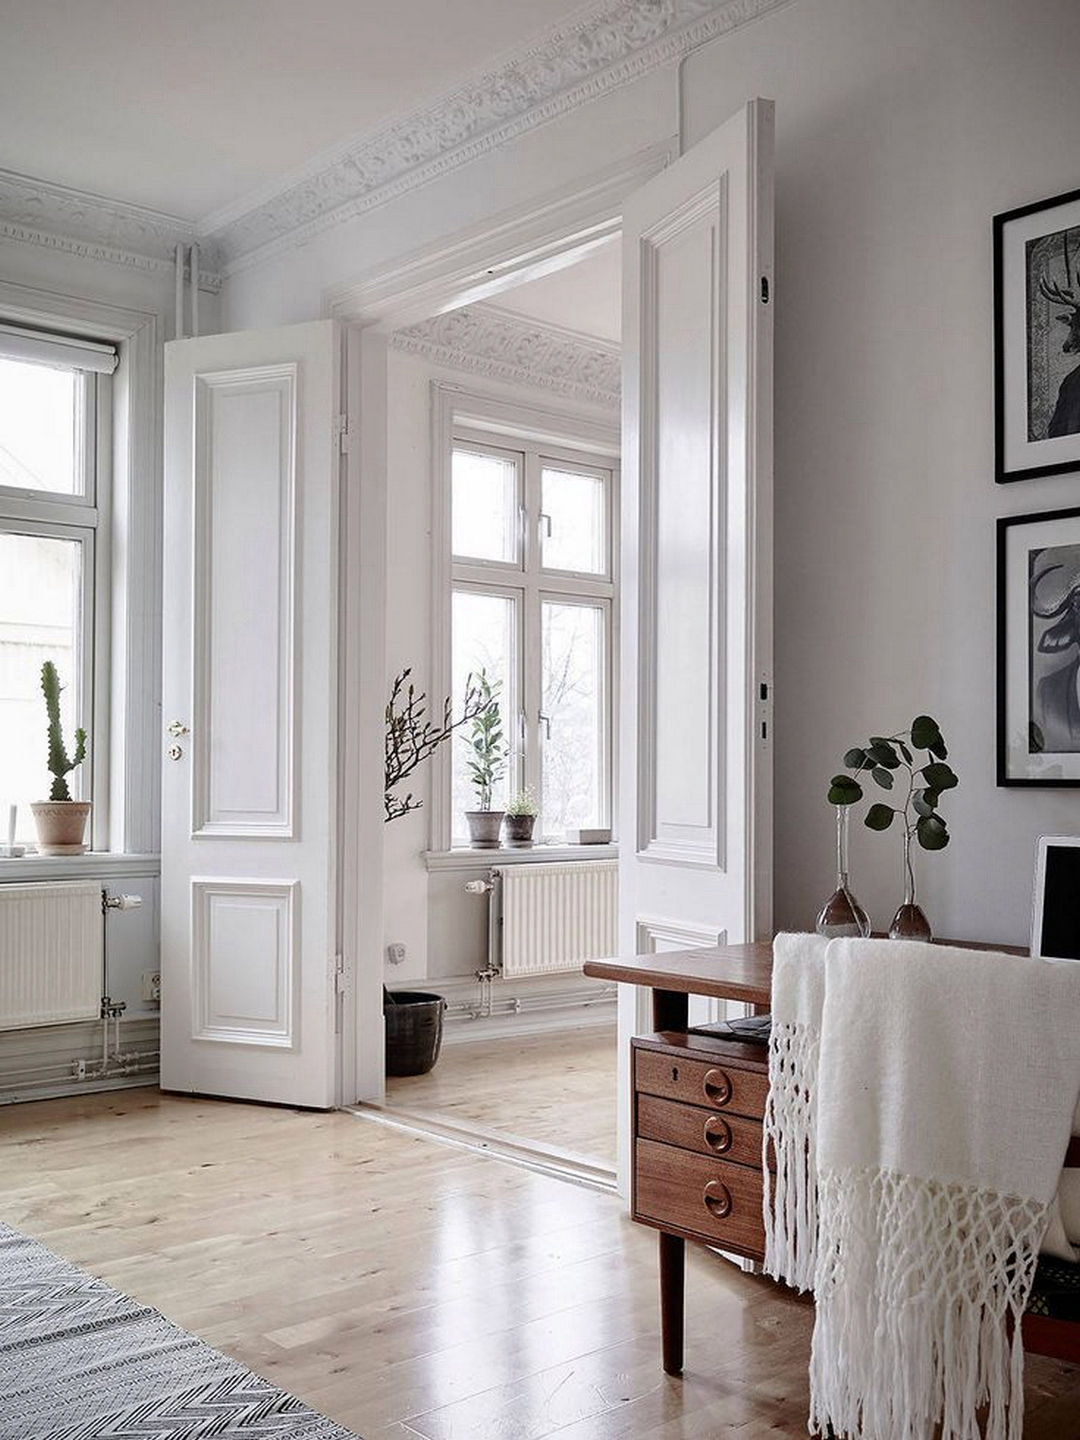 Double doors interior scandinavian interior doors scandinavian windows swedish interior design interior